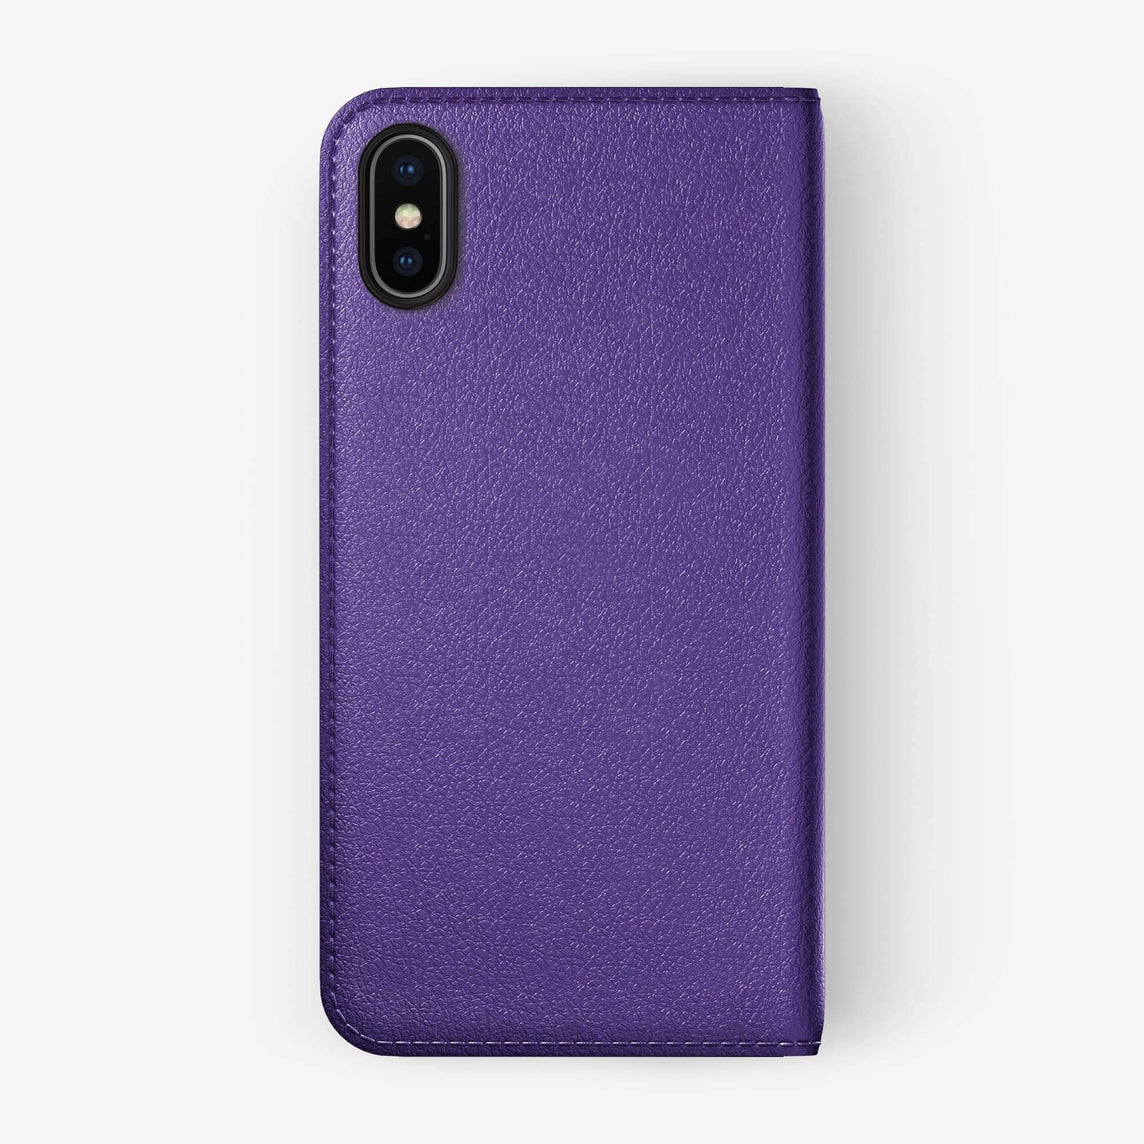 Violet Calfskin iPhone Folio Case for iPhone XS Max finishing black - Hadoro Luxury Cases img1